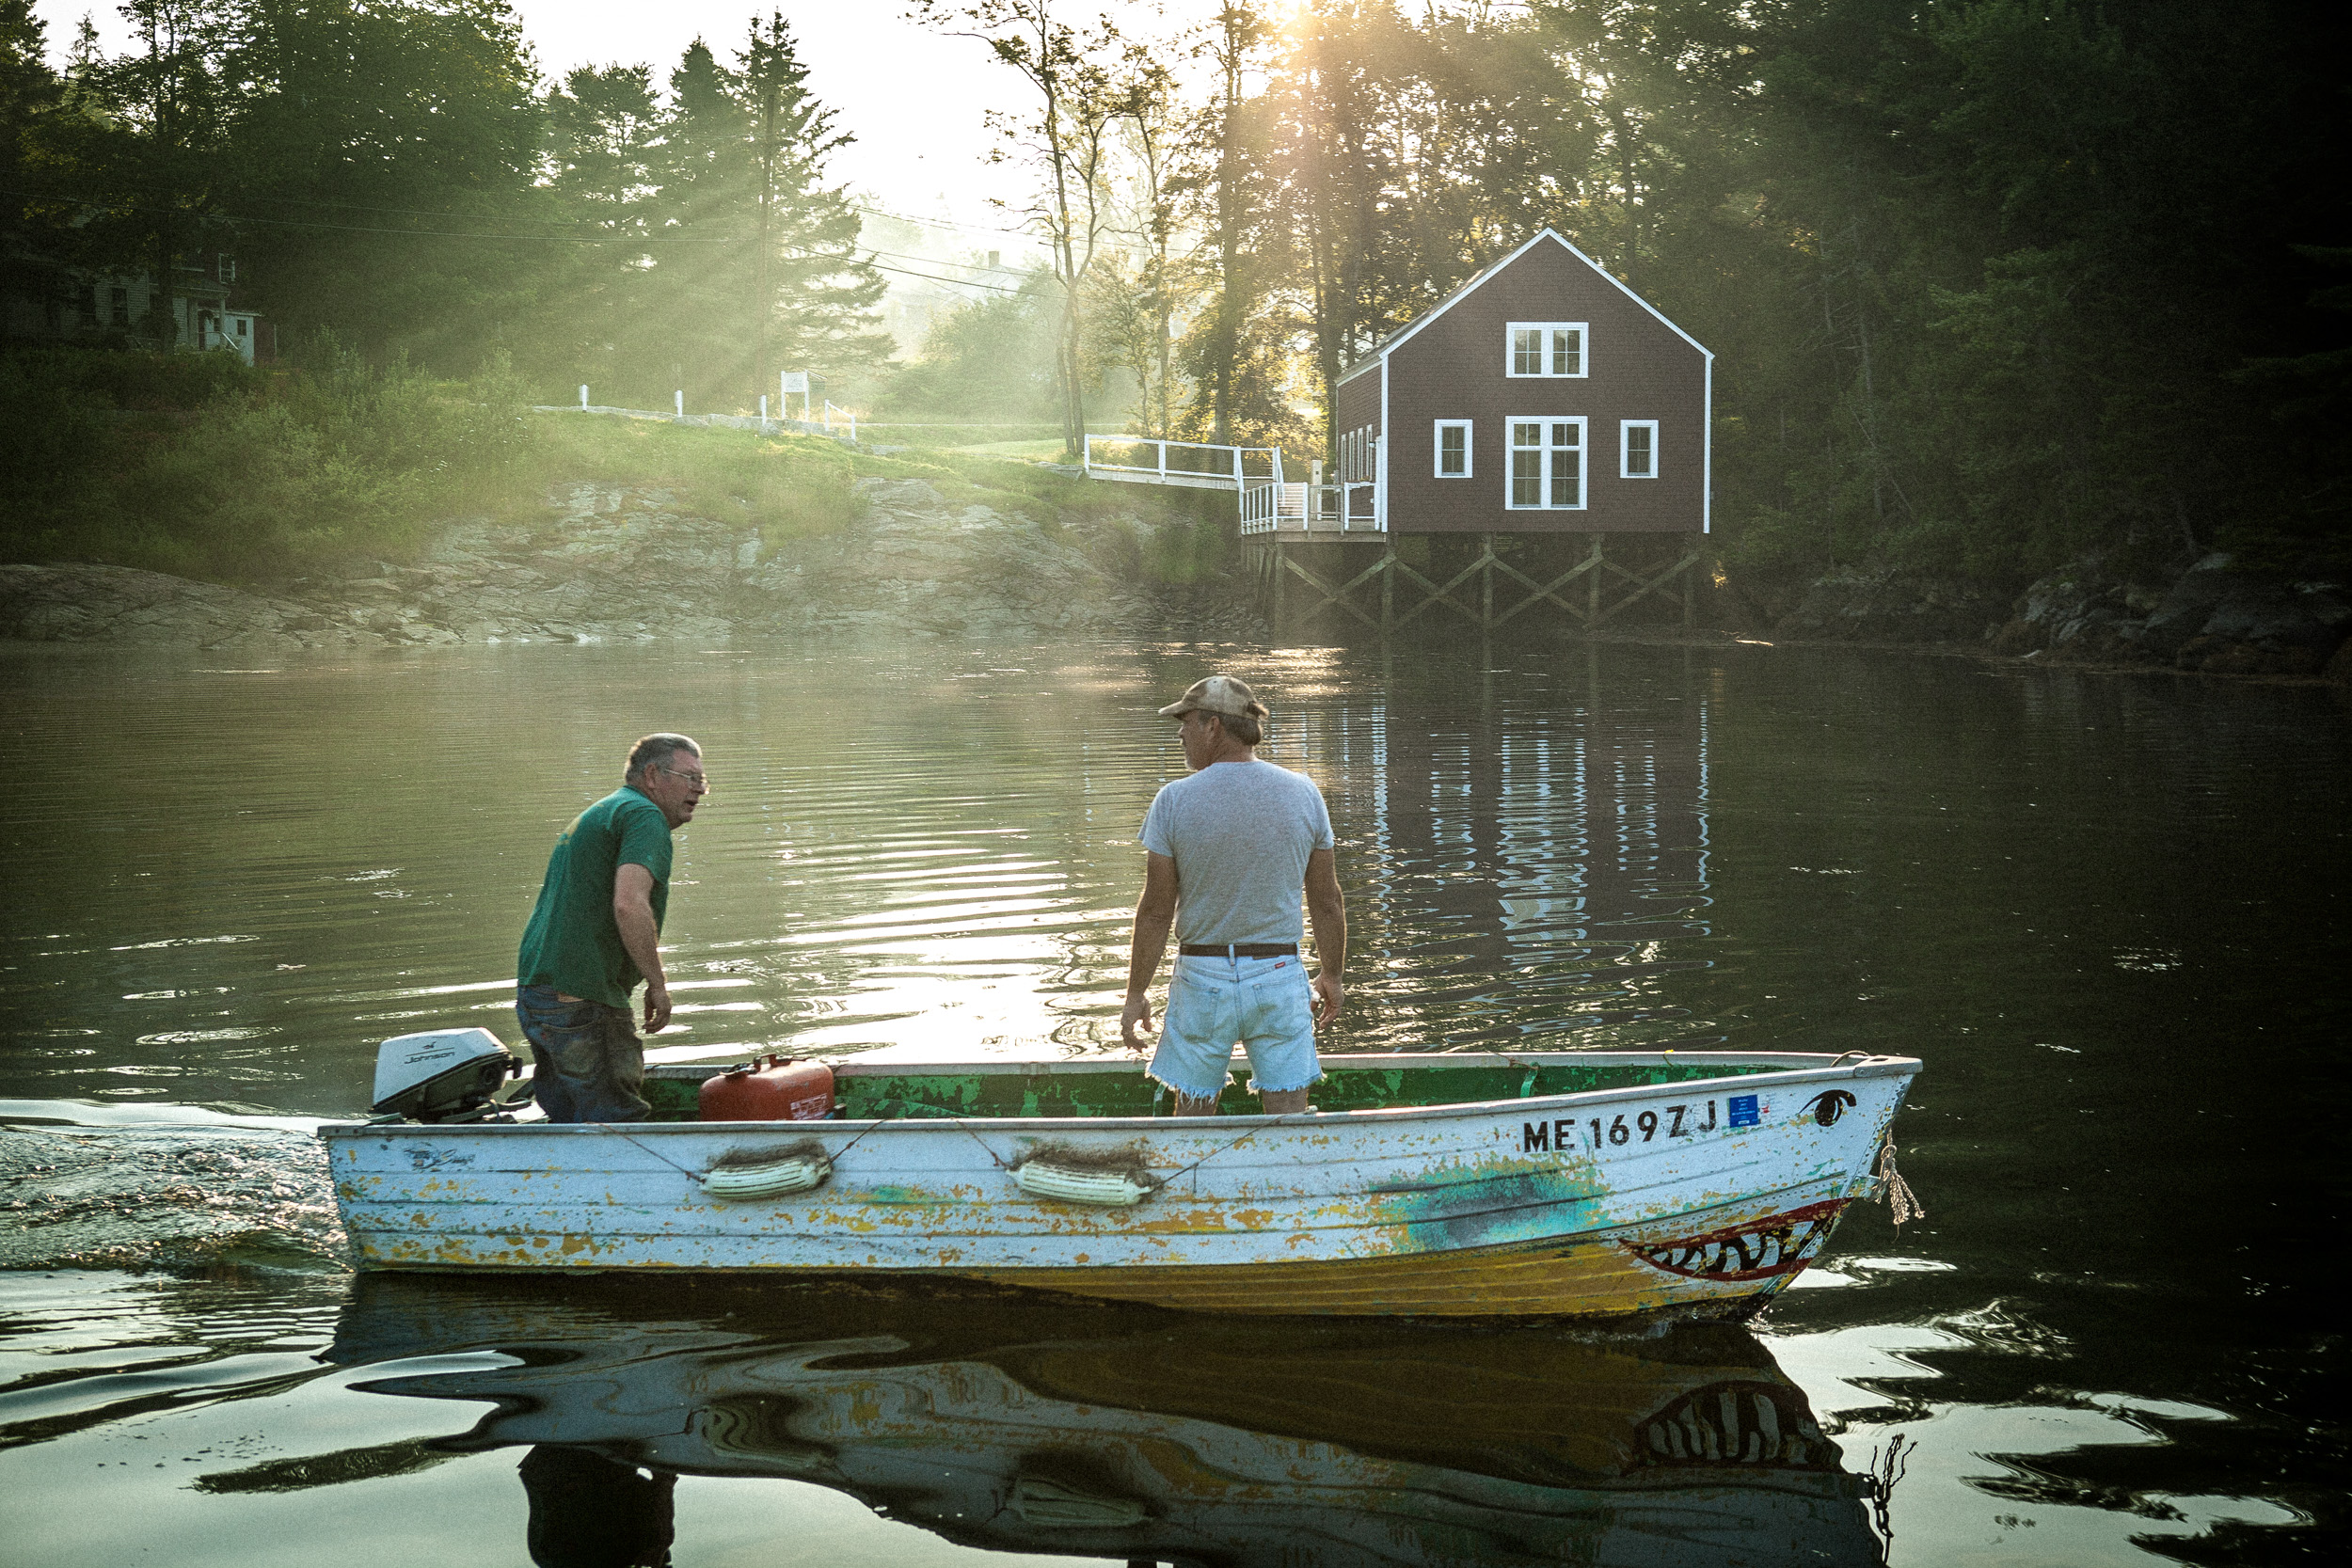 Men on boat in Maine, shot by Steven P. Widoff